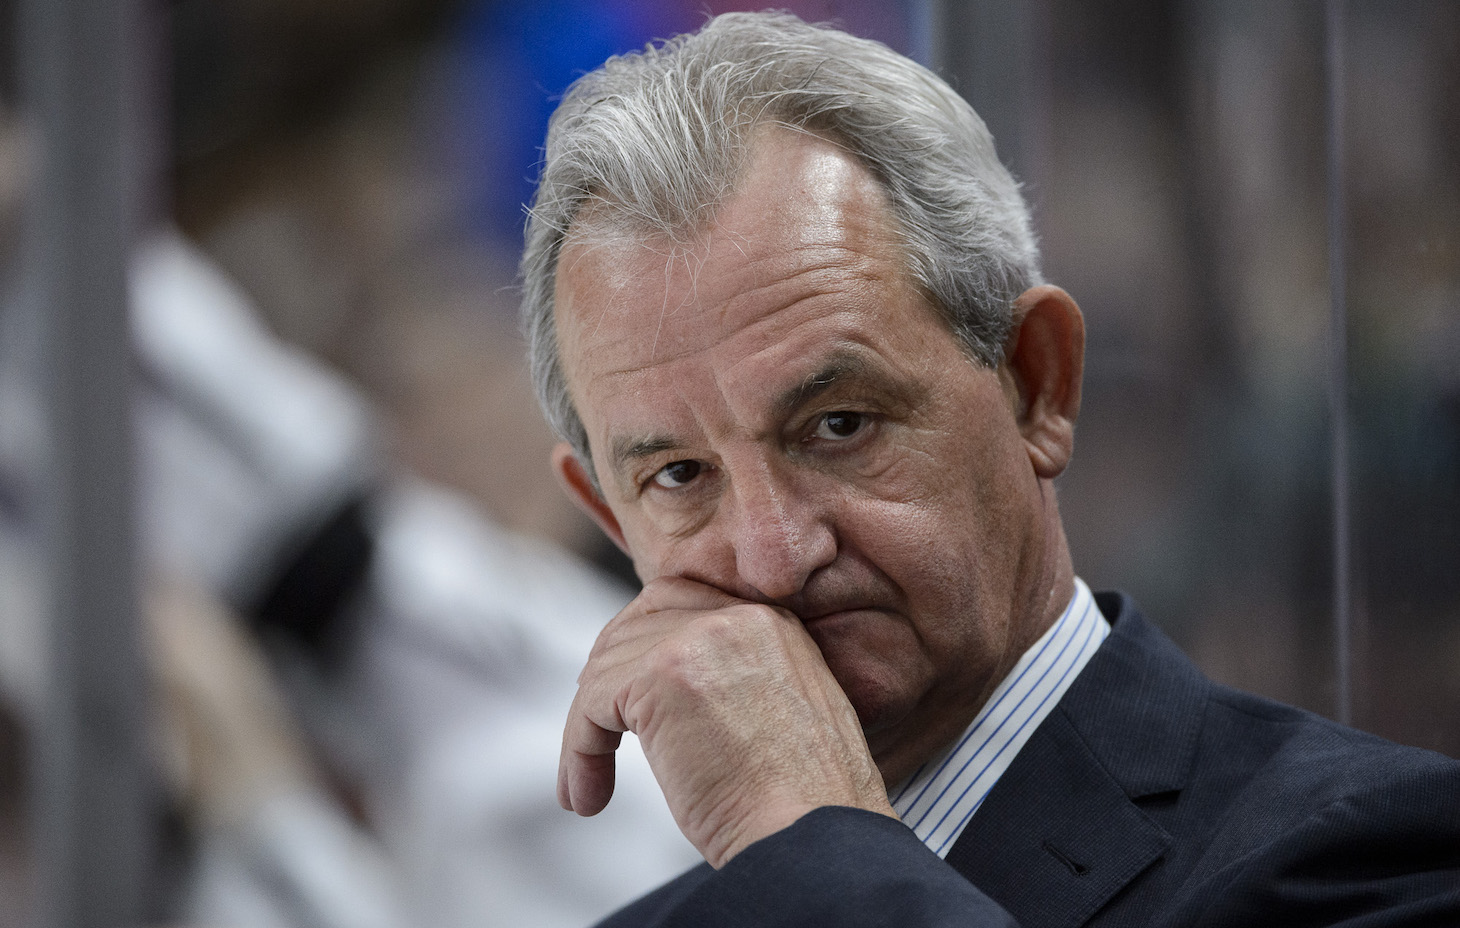 ST PAUL, MN - FEBRUARY 27: Head coach Darryl Sutter of the Los Angeles Kings looks on during the third period of the game against the Minnesota Wild on February 27, 2017 at Xcel Energy Center in St Paul, Minnesota. The Wild defeated the Kings 5-4 in overtime. (Photo by Hannah Foslien/Getty Images)